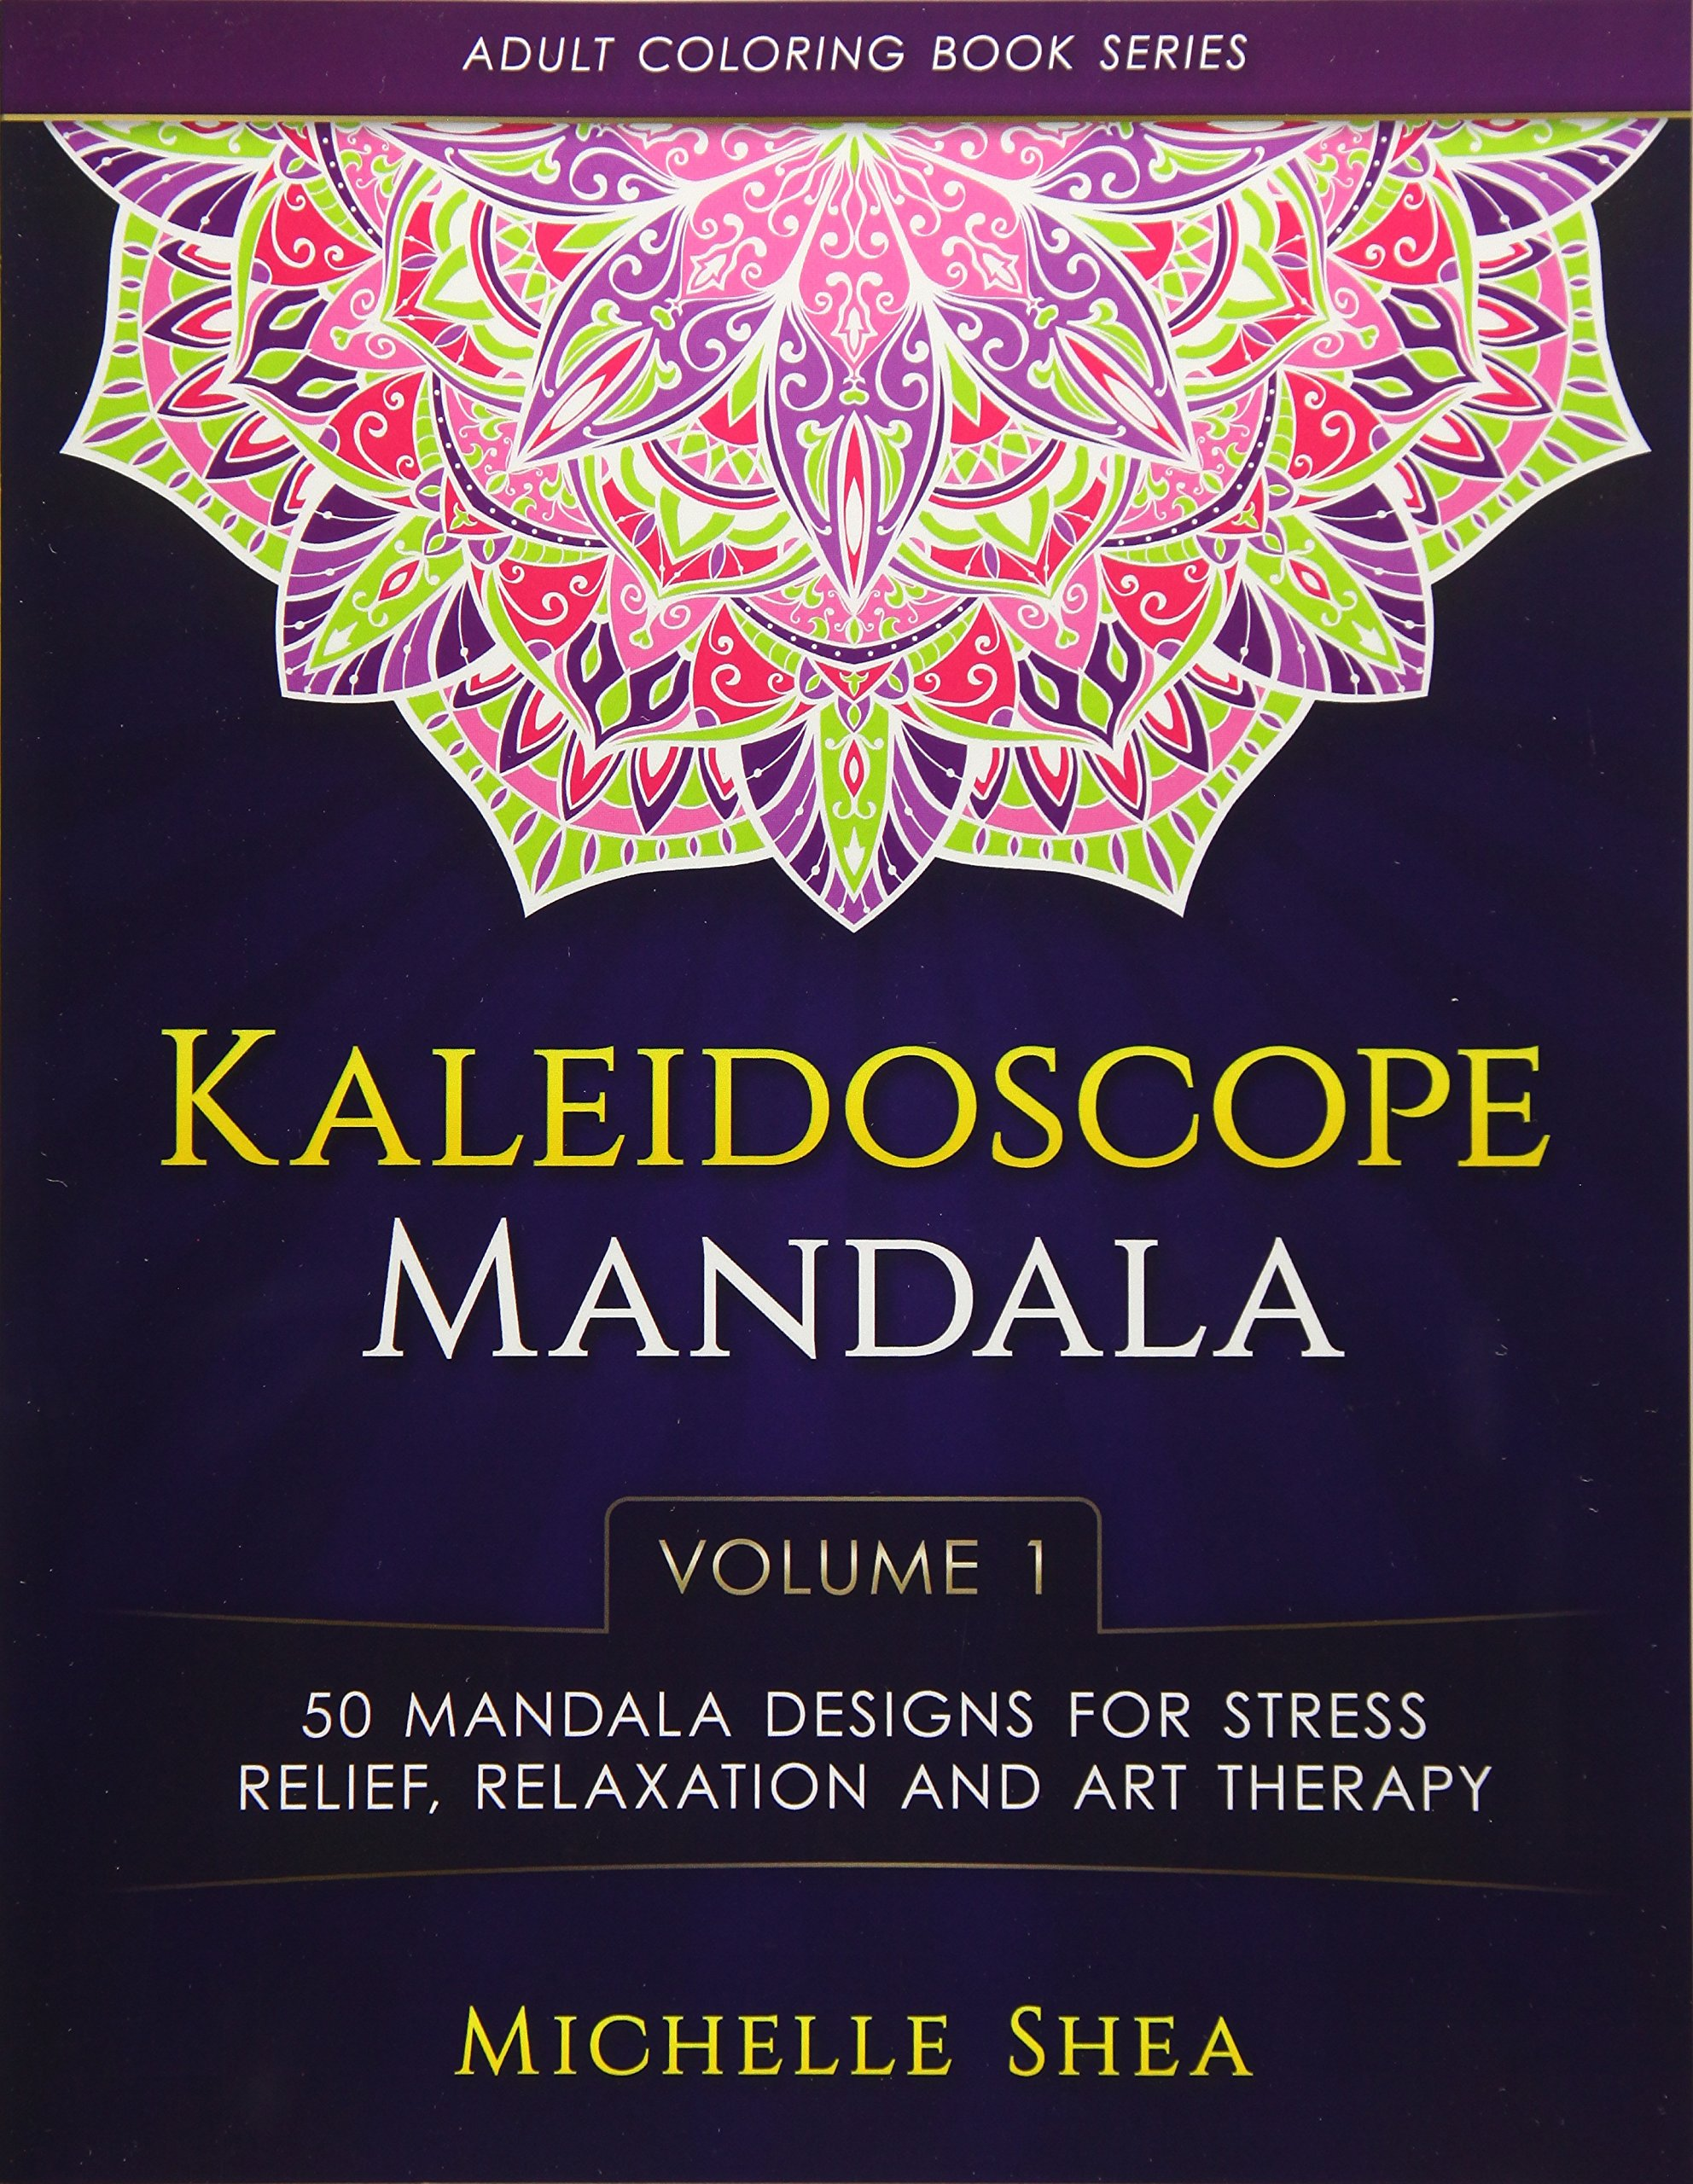 Read Online The Kaleidoscope Mandala Coloring Book: 50 Mandala Designs For Stress Relief, Relaxation and Art Therapy (Volume 1) (Adult Coloring Book Series) PDF